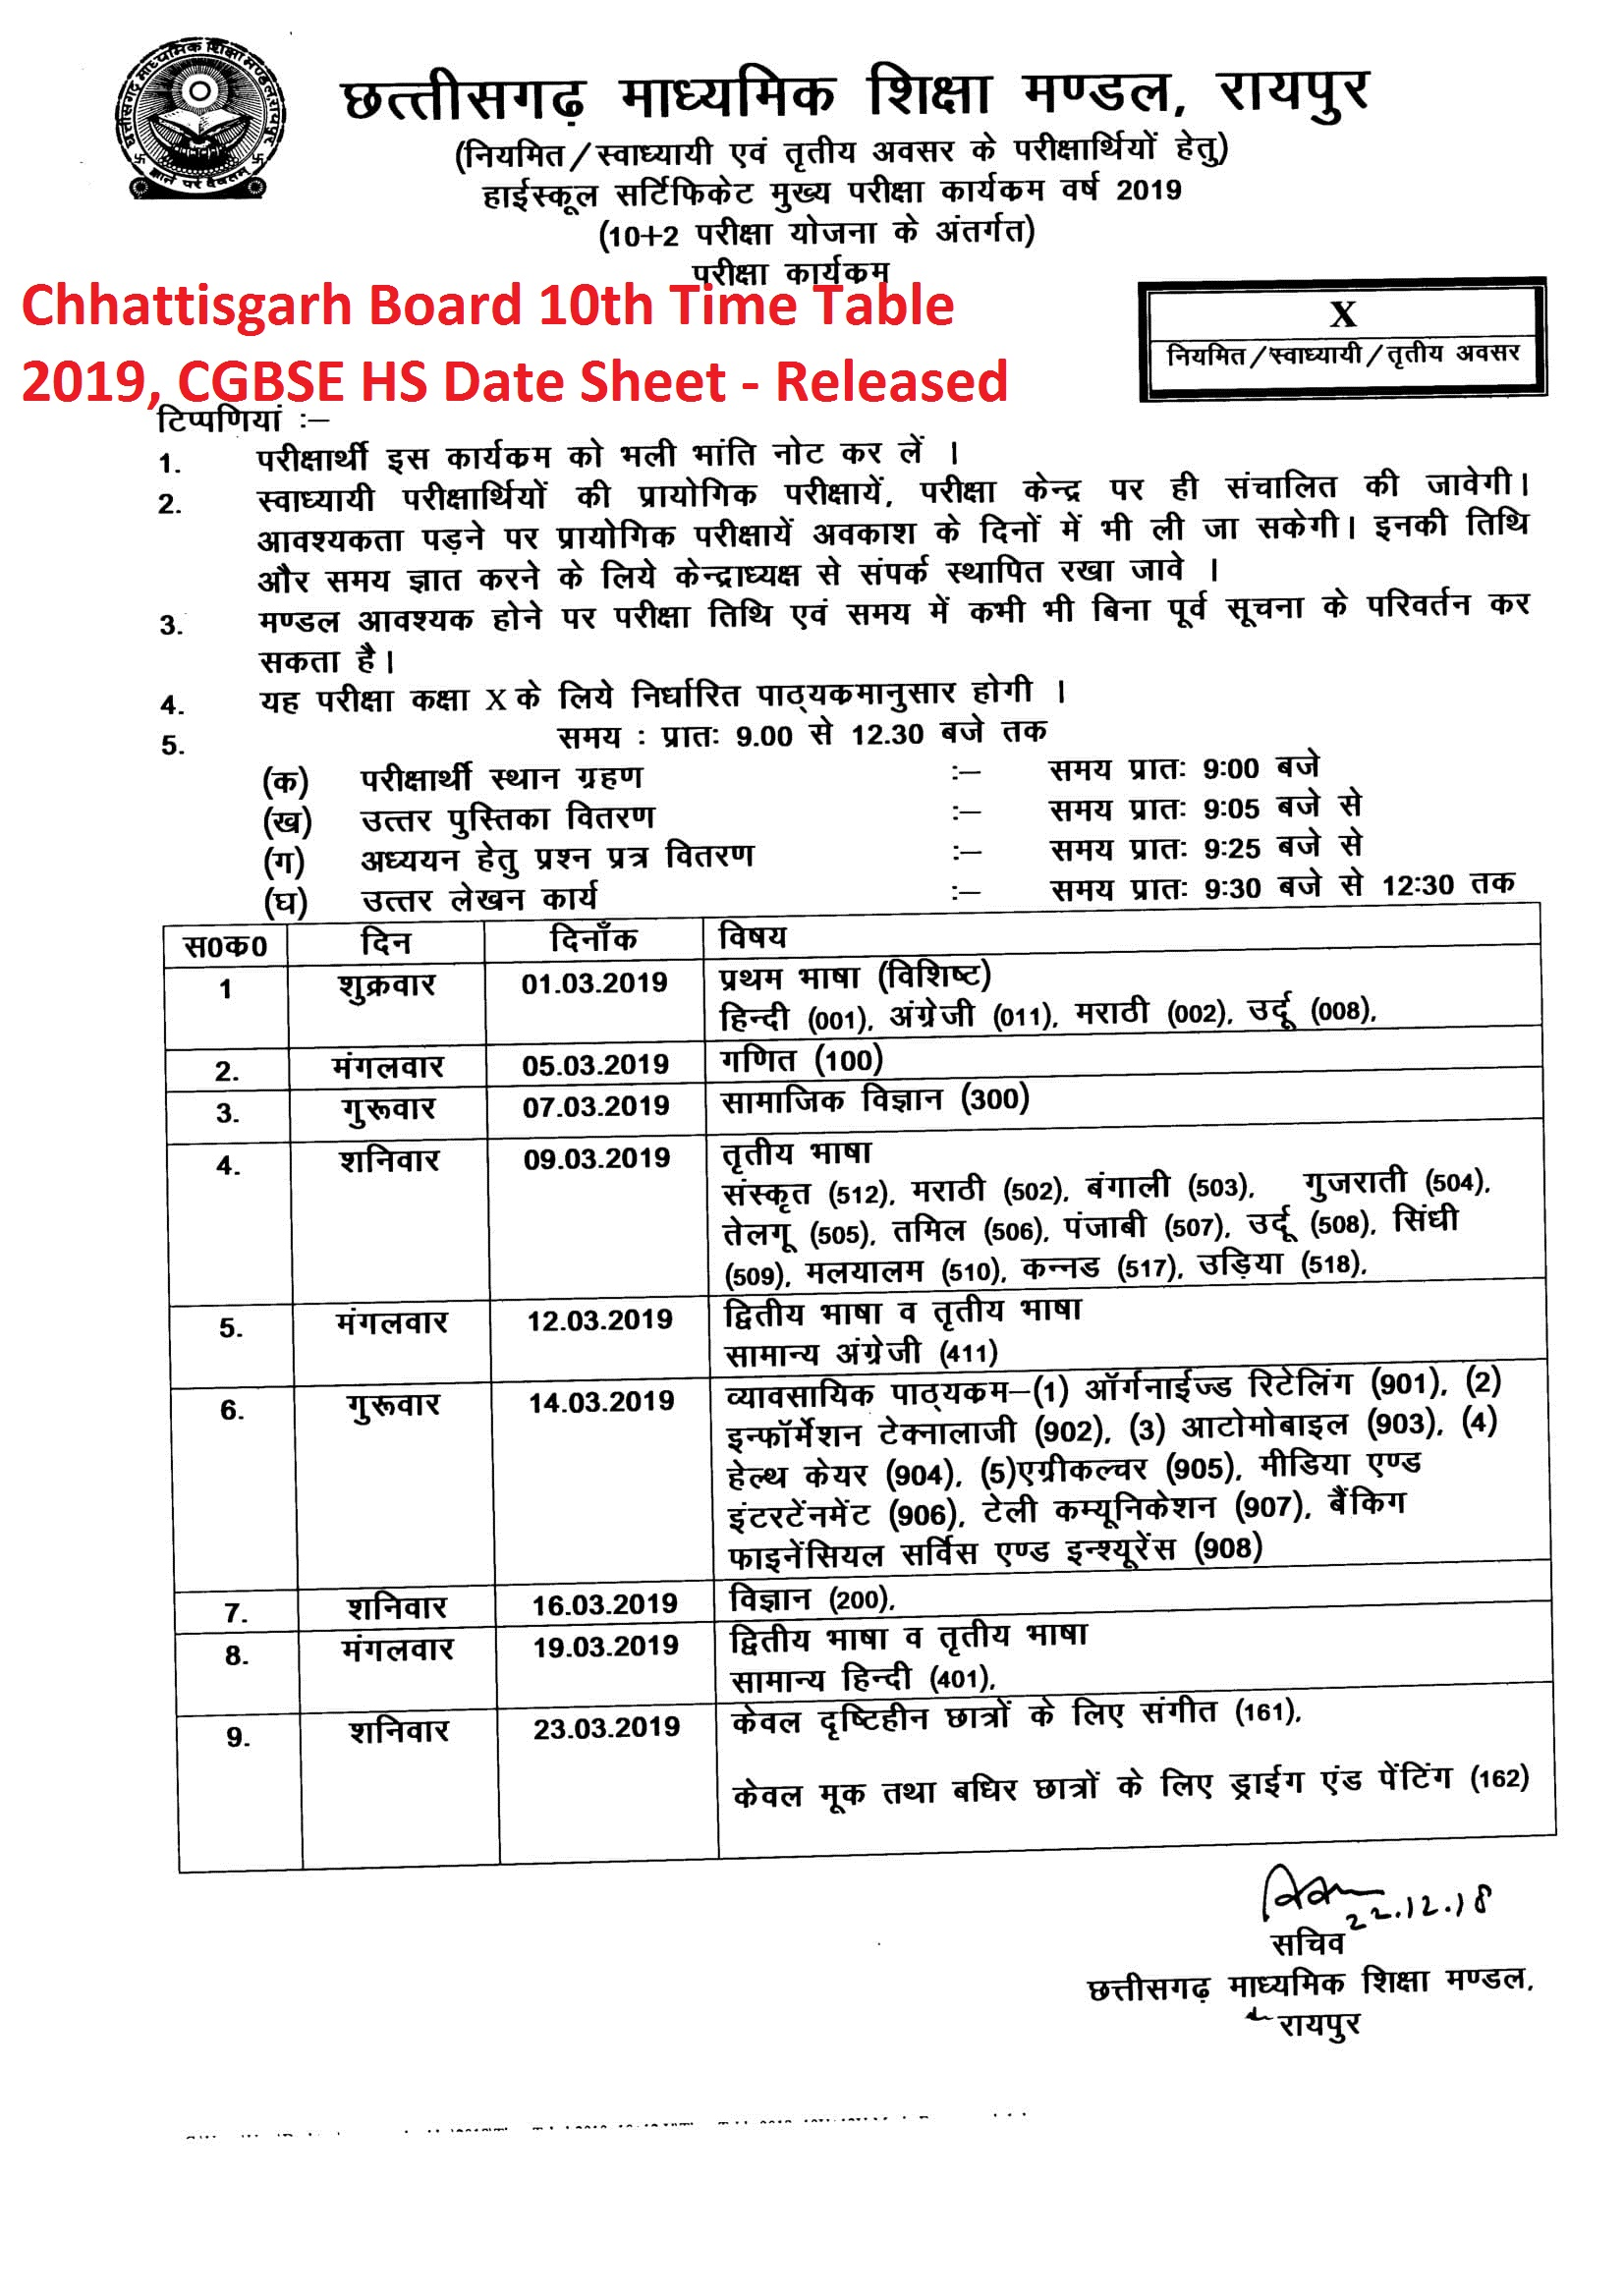 CG Board 10th Time Table 2019, CGBSE HS Date Sheet – Released